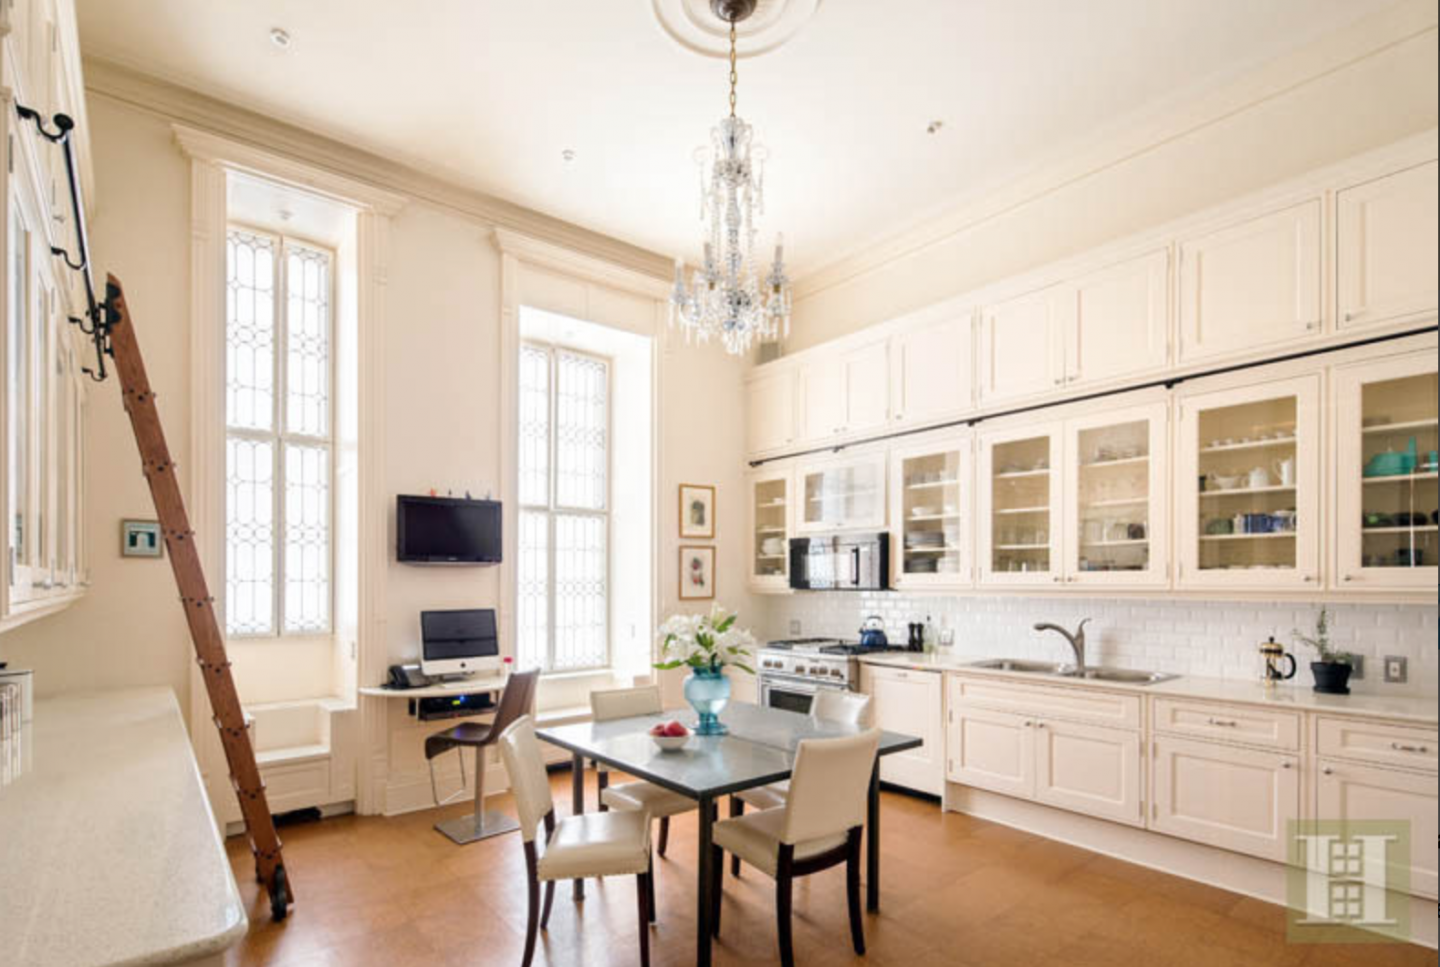 The renovated chef's kitchen, deigned by Françoise Bollack, boasts custom-milled cabinetry.